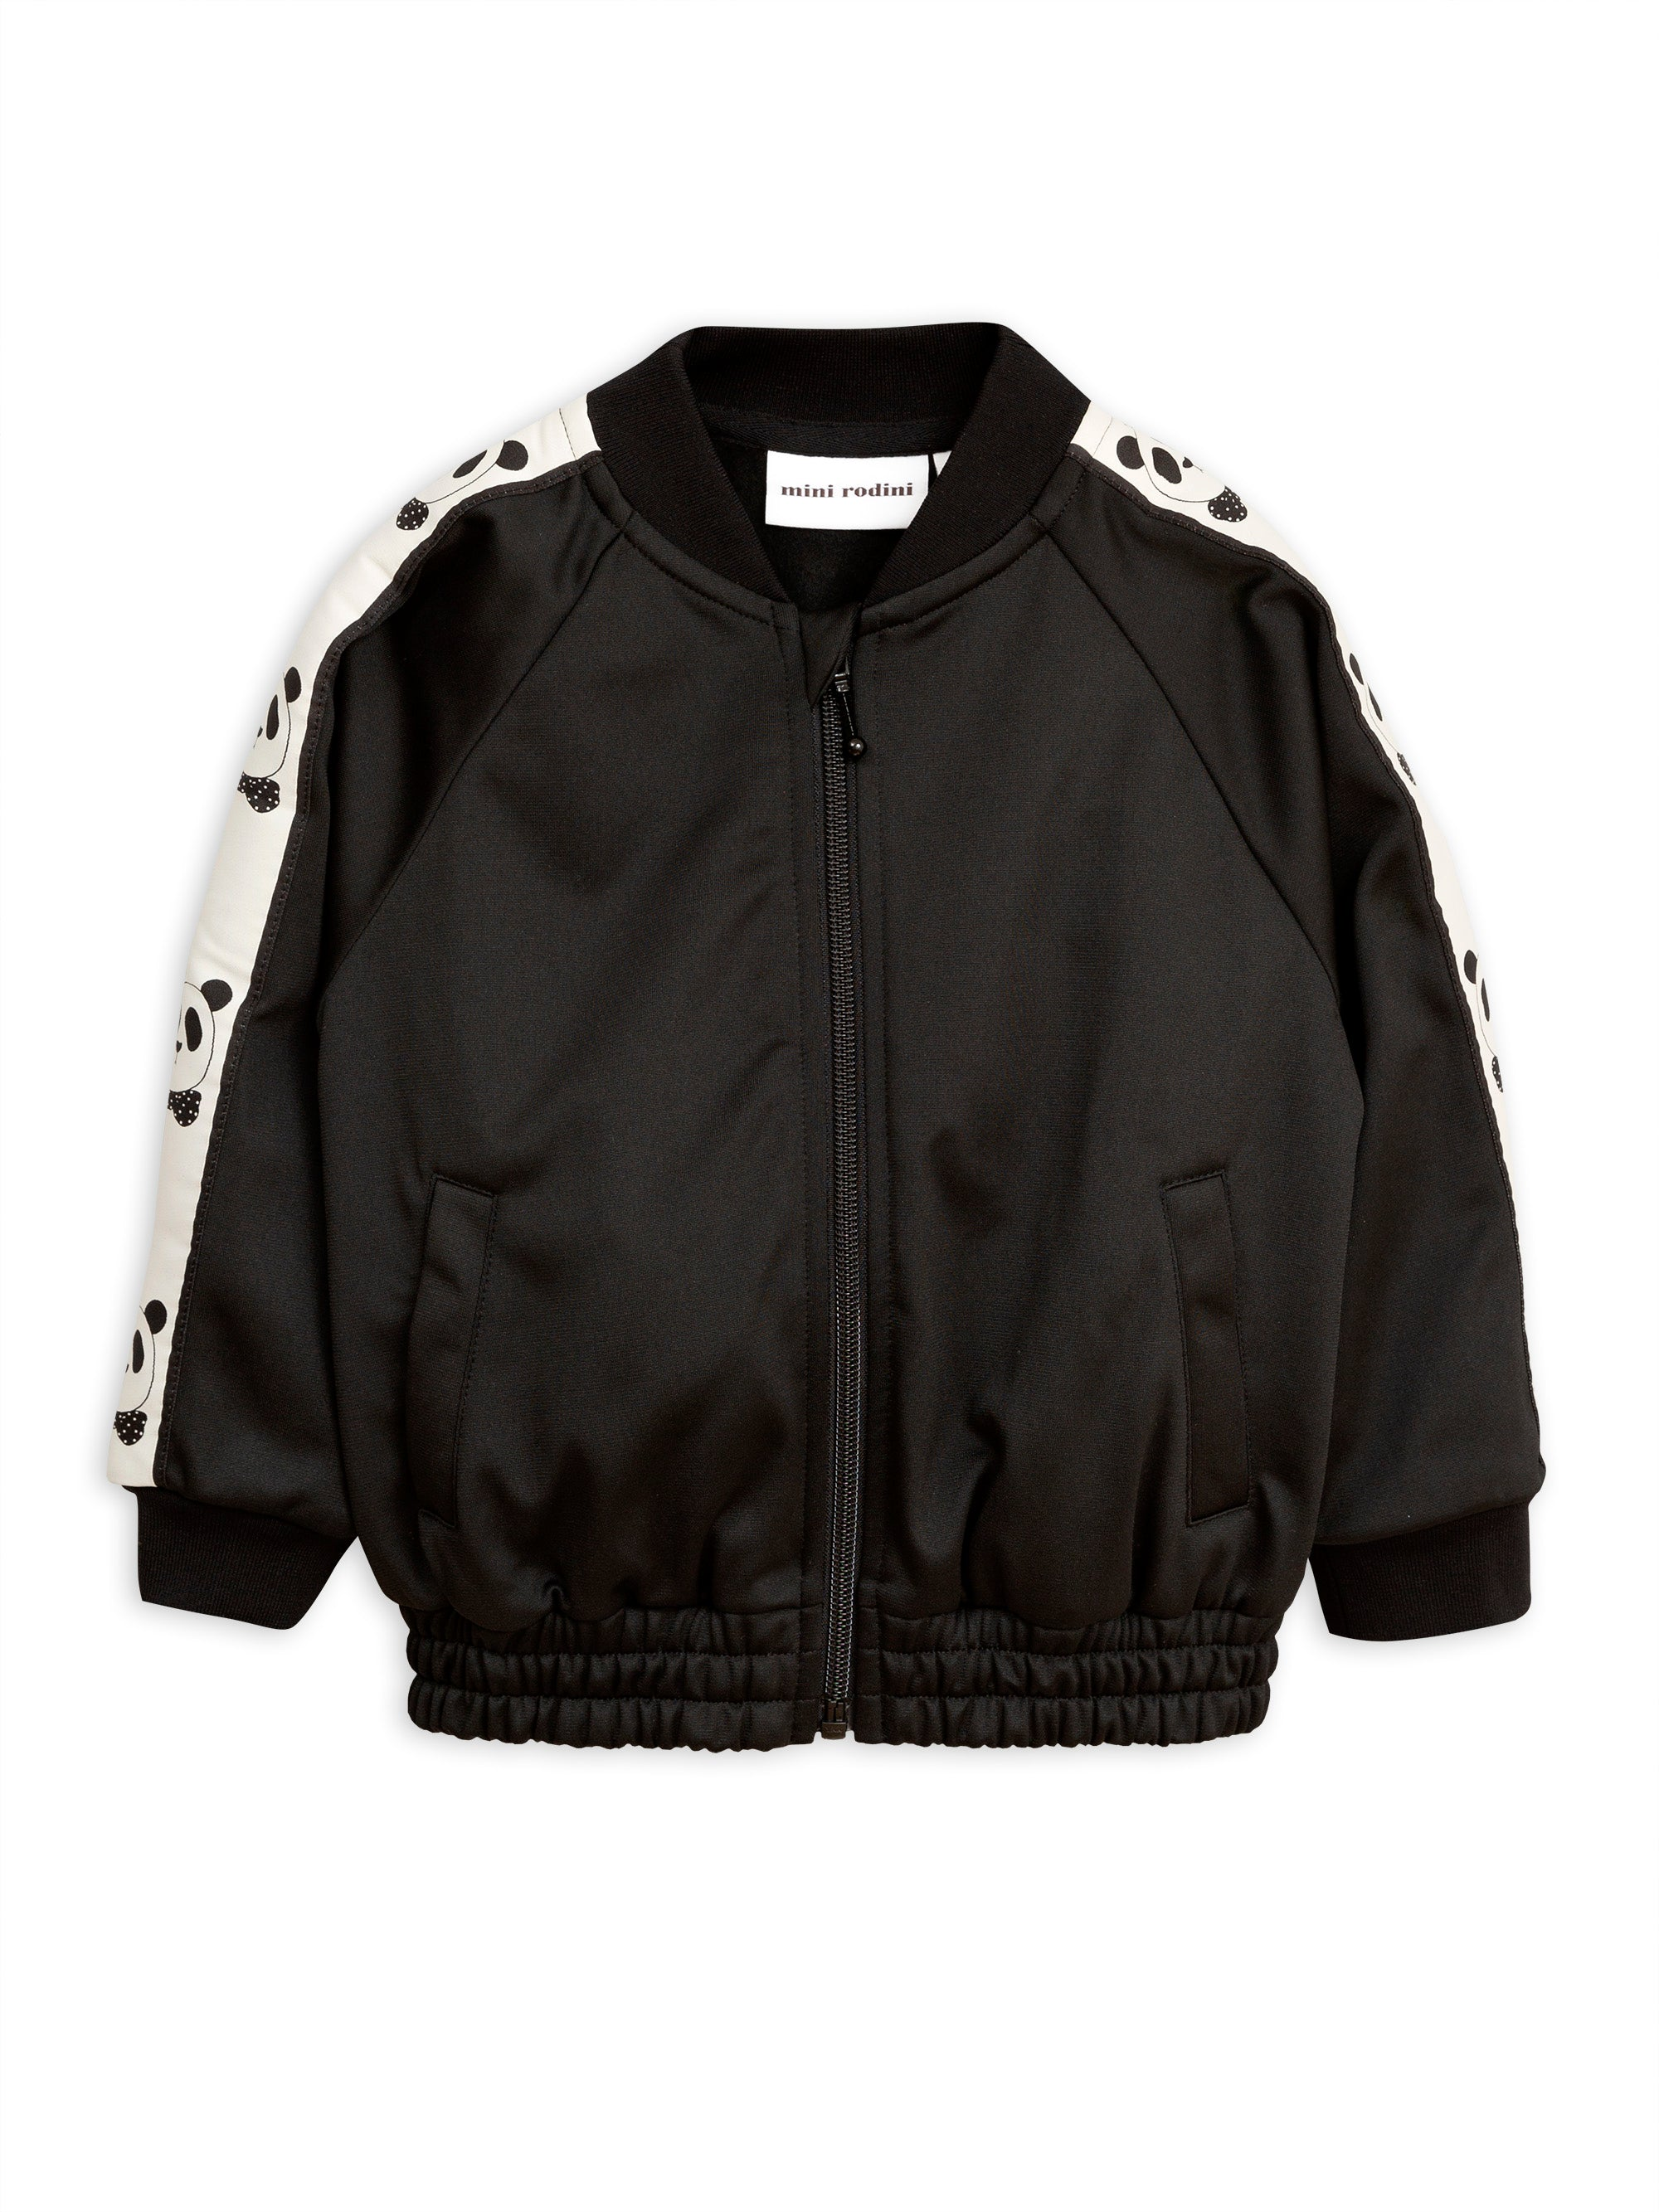 Mini Rodini Panda Jacket - Black